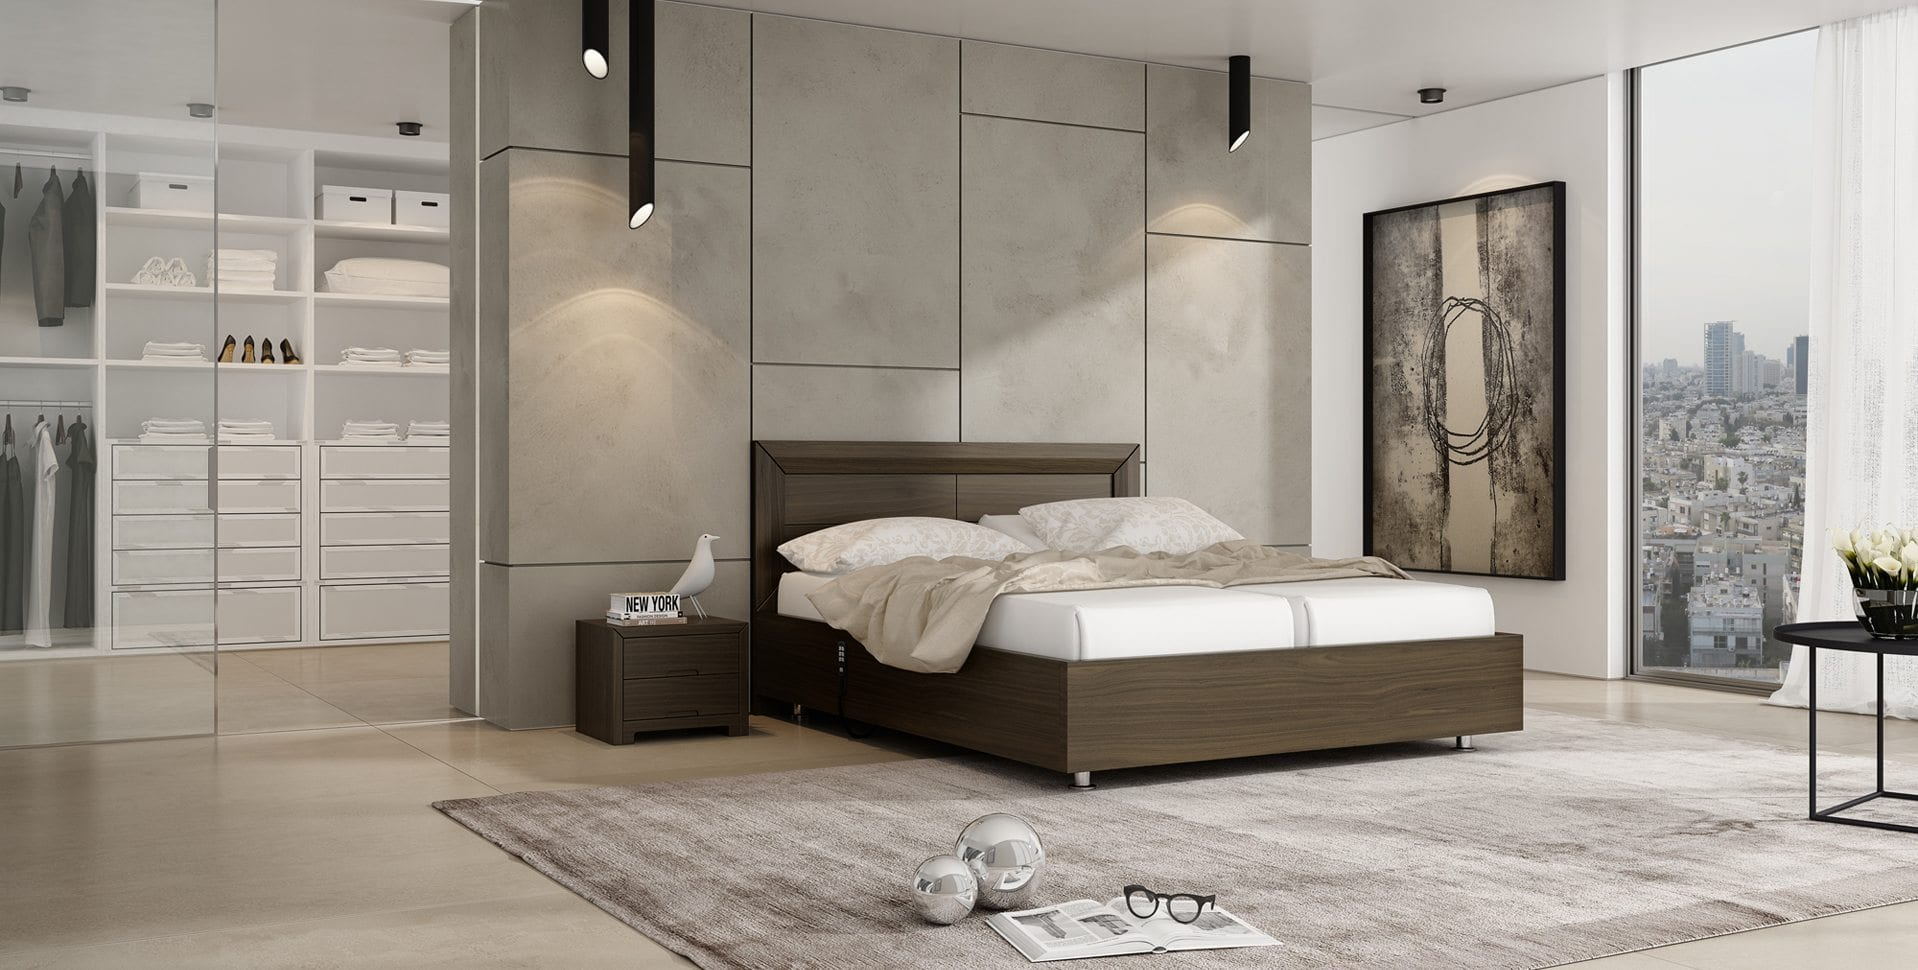 Maayan-Golan_Architectural-Visualization_product-visualization_ Adjustable-bed_american-system_04